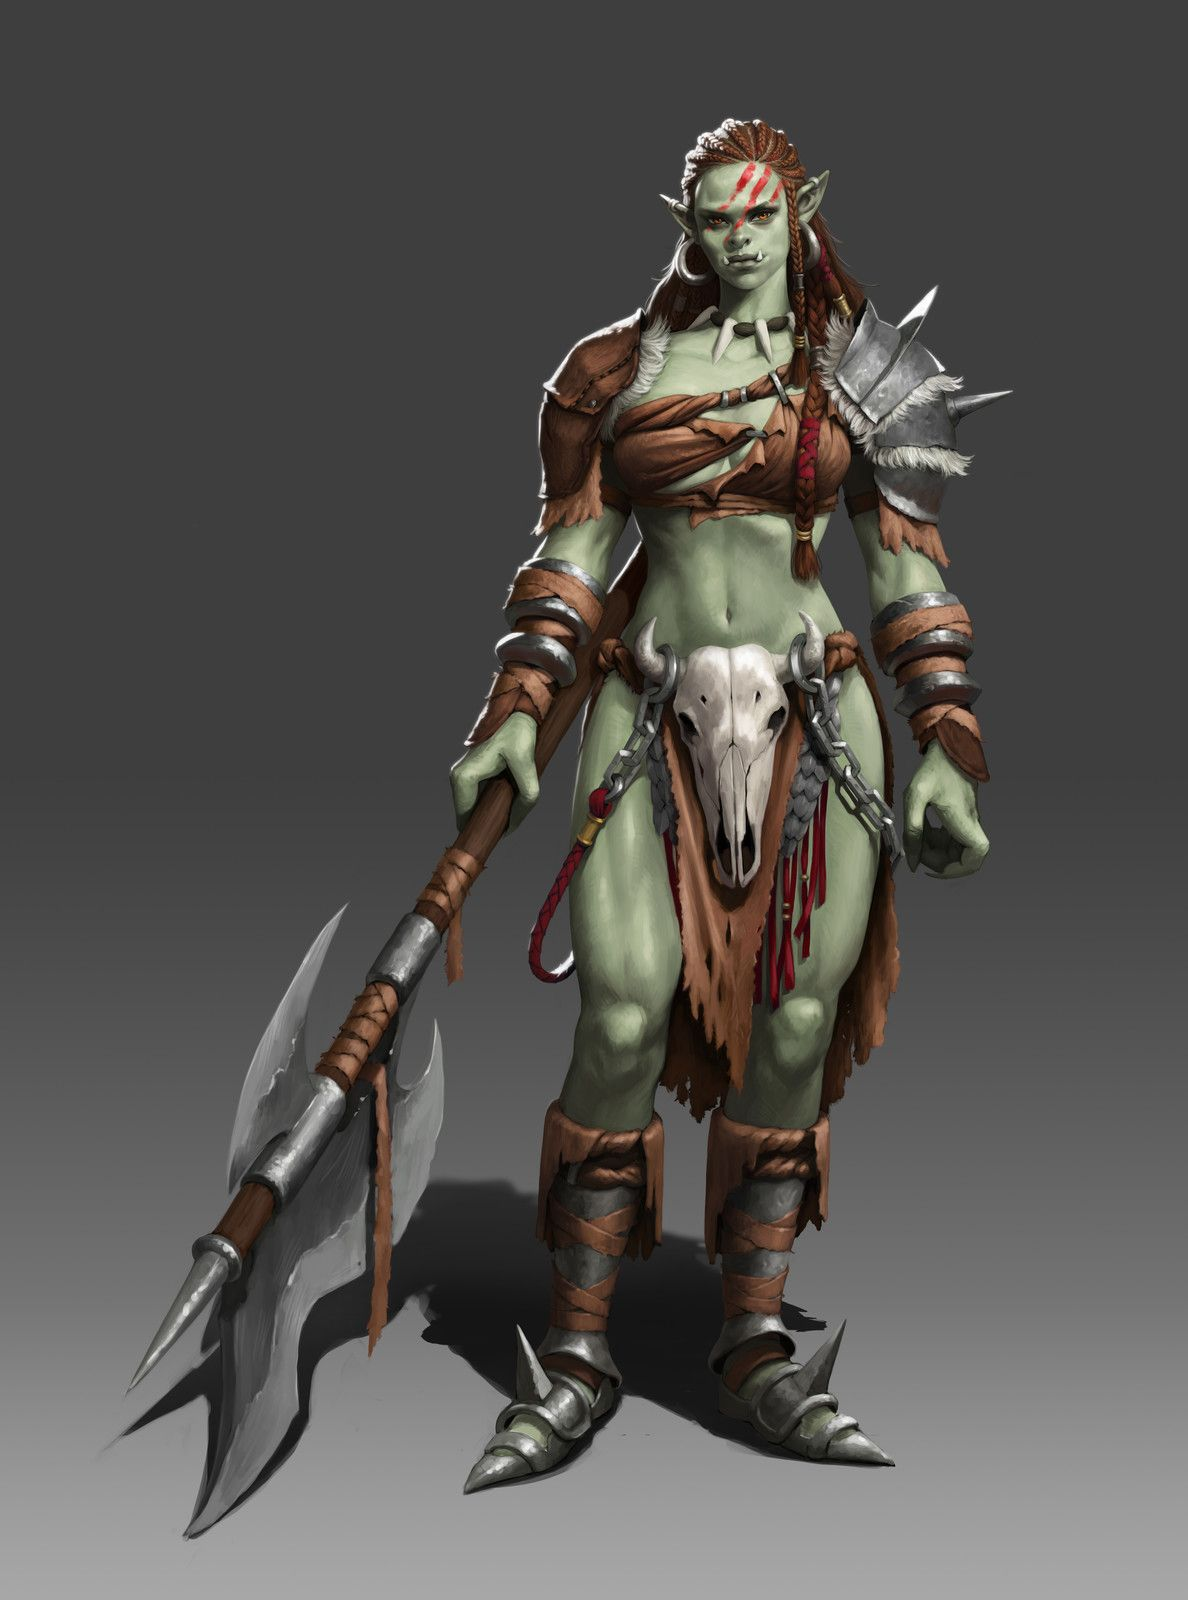 Pin by Jake Jake on characters | Fantasy characters, Orc warrior